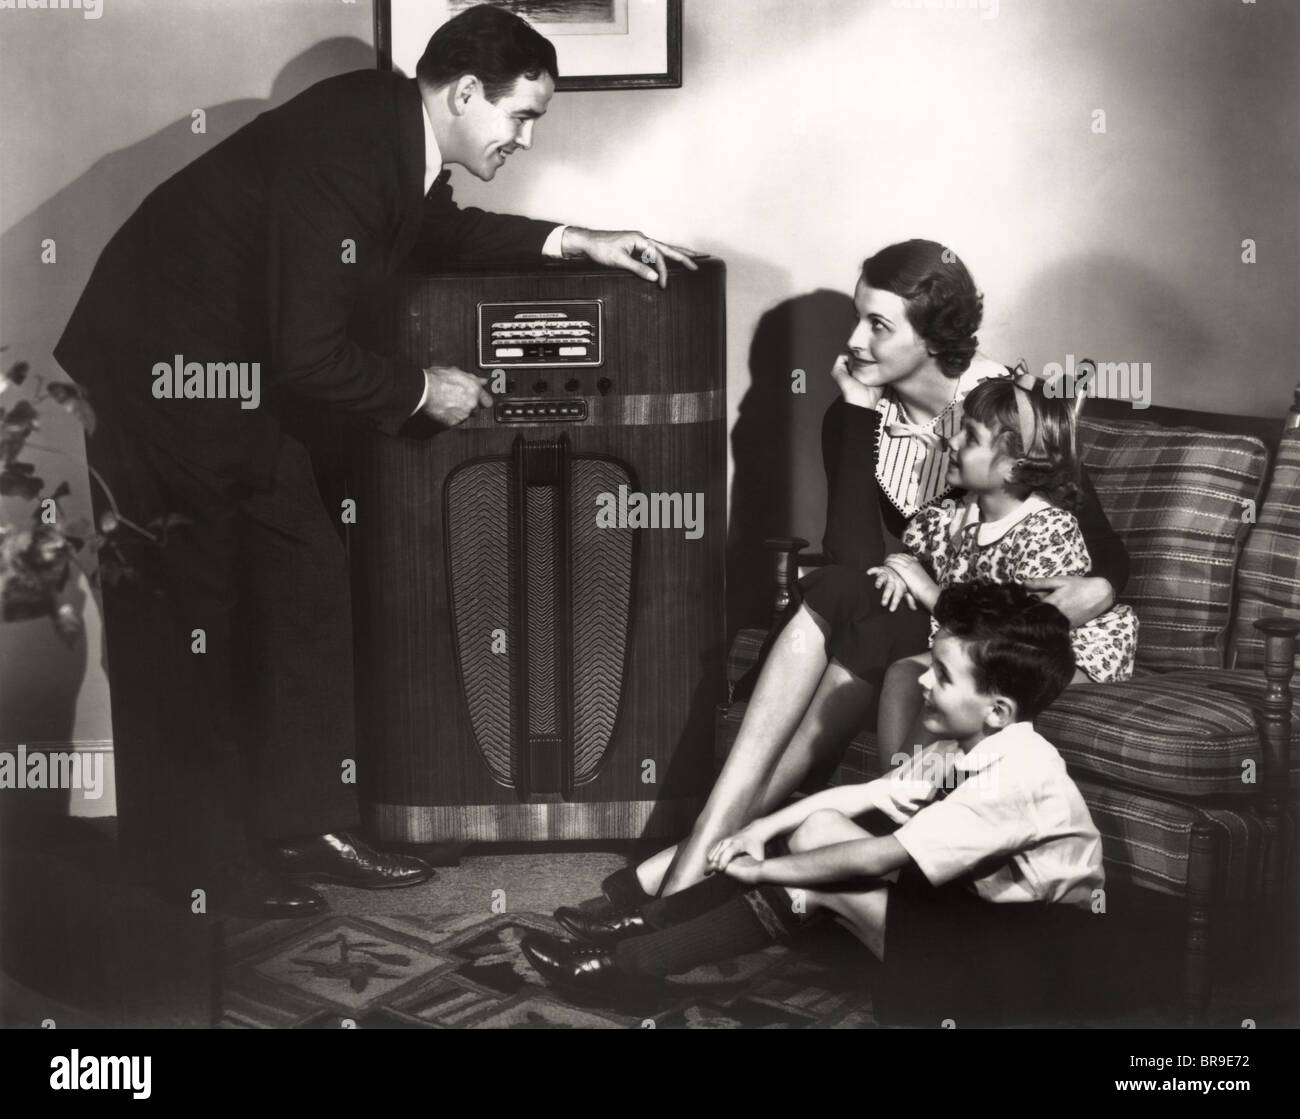 Lone Ranger Mystery Of The Silver Bullets Old Time Radio Show additionally Laissez Faire Extraordinaire further Stock Photo 1930s Family Listening To Radio Father Tuning Channel Mother Children 31556198 additionally  on old fashioned families gathered around radio